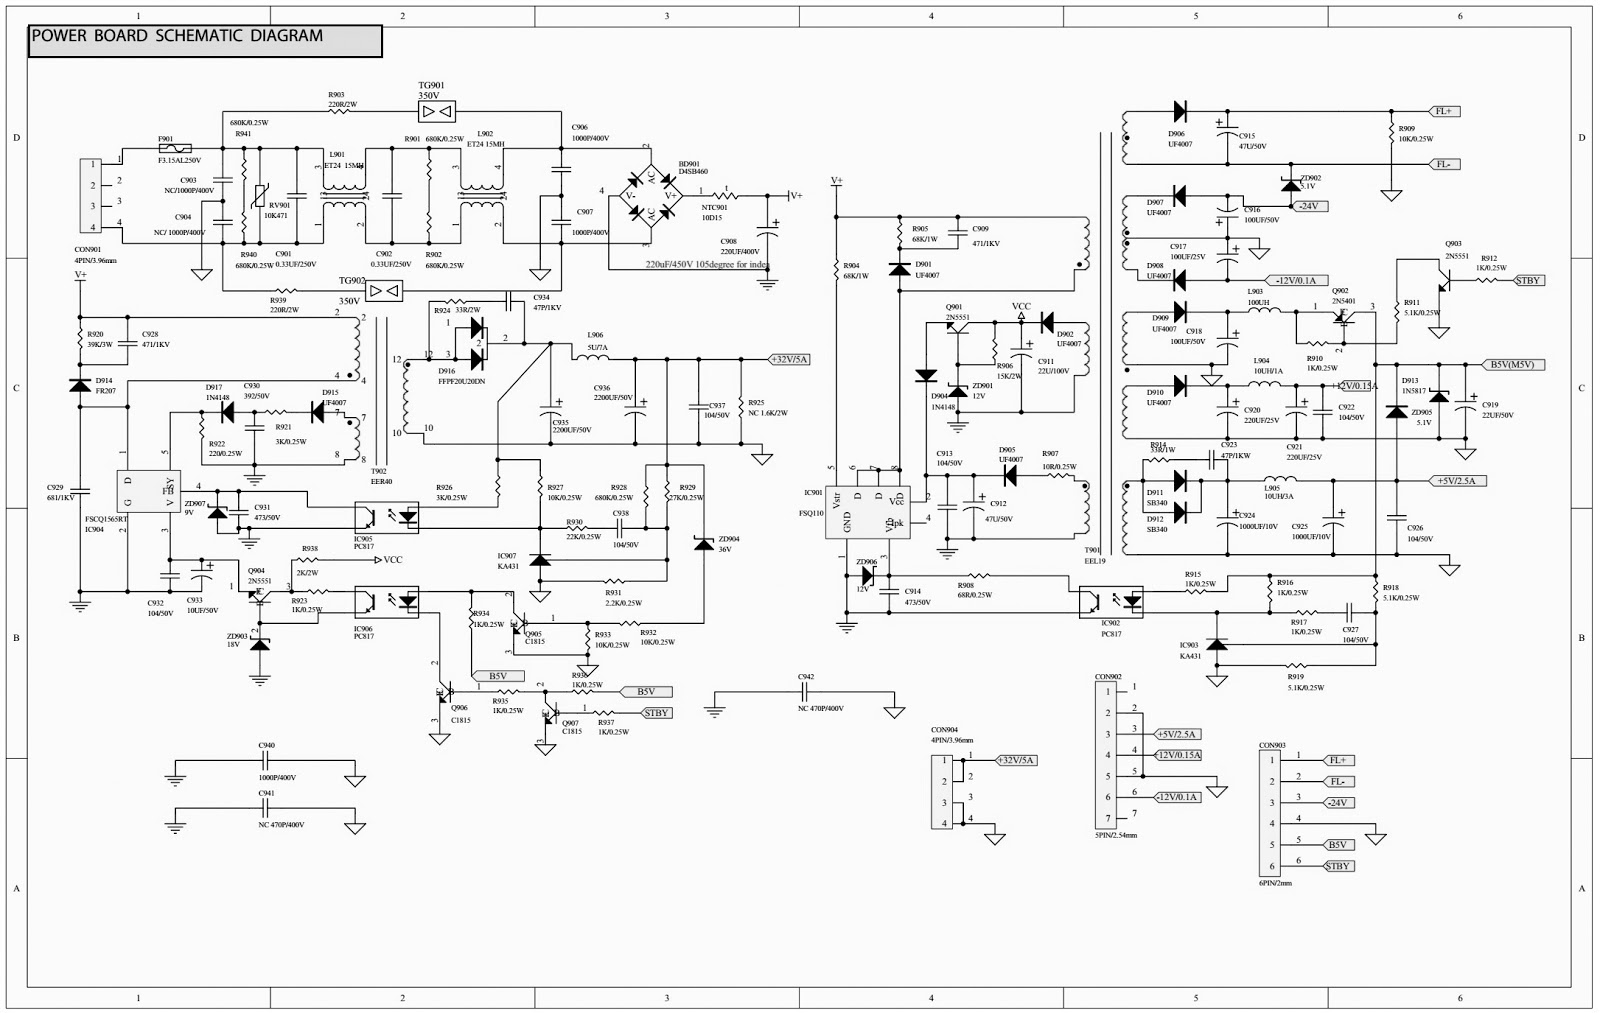 Structured Wiring Diagram Trailer Lights 7 Pin South Africa Whole House Vacuum Blueprints